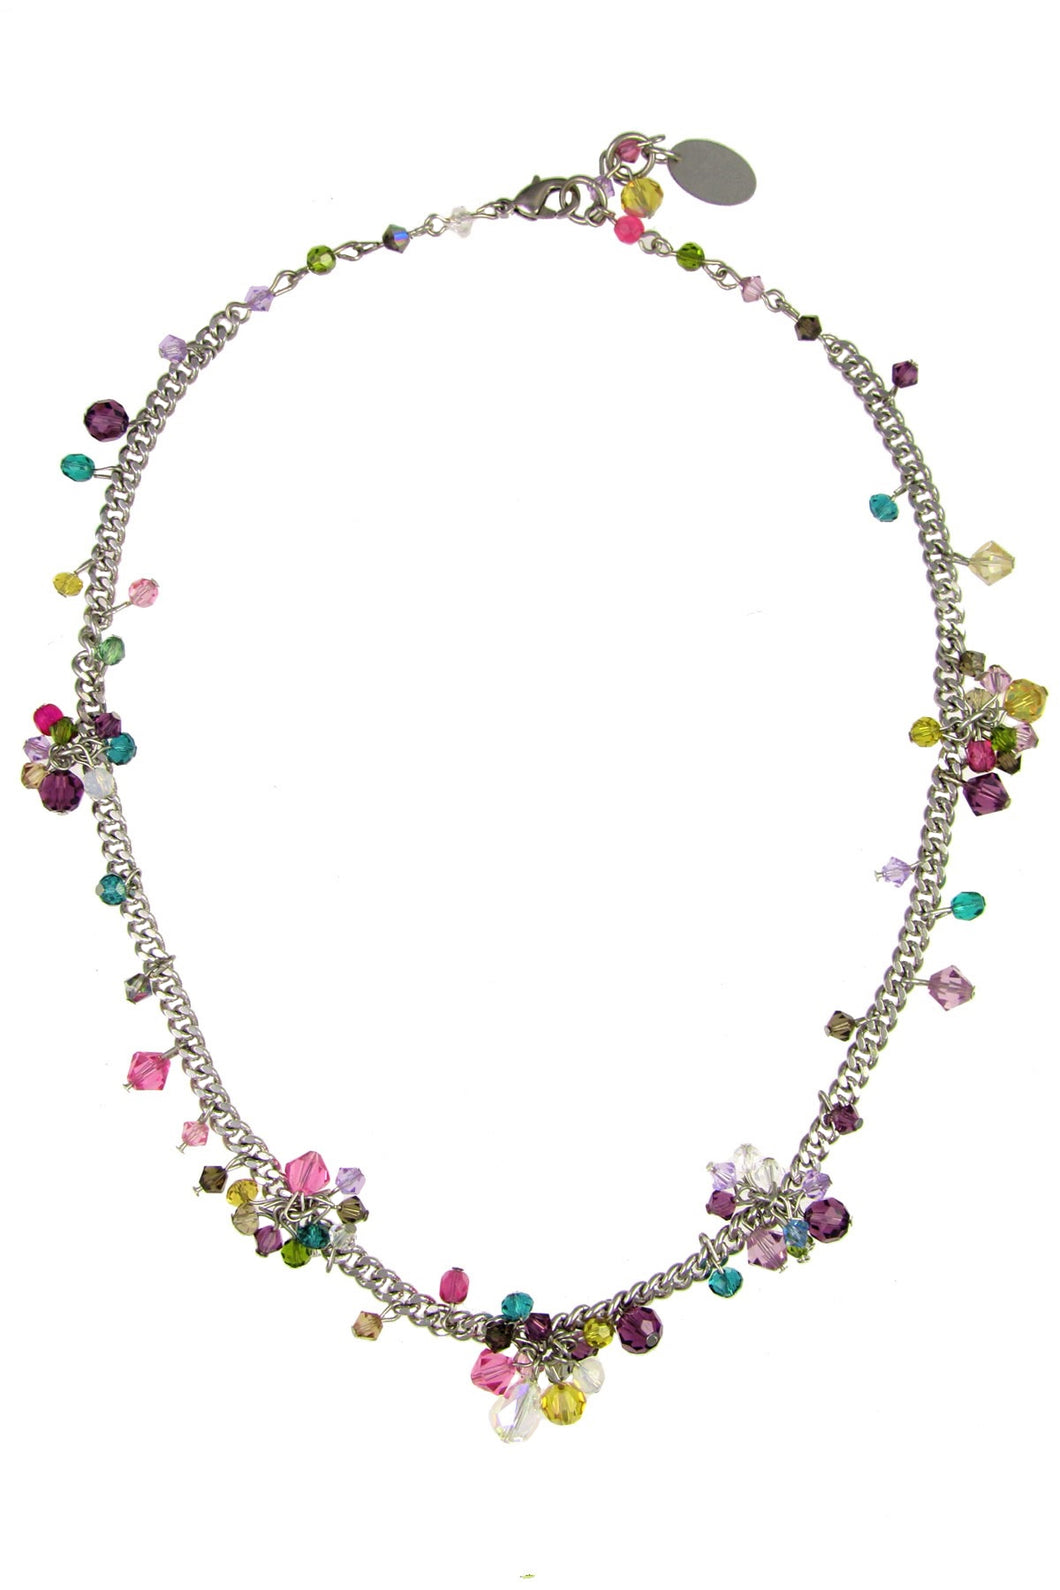 SALE - Ana Swarovski Crystals Necklace